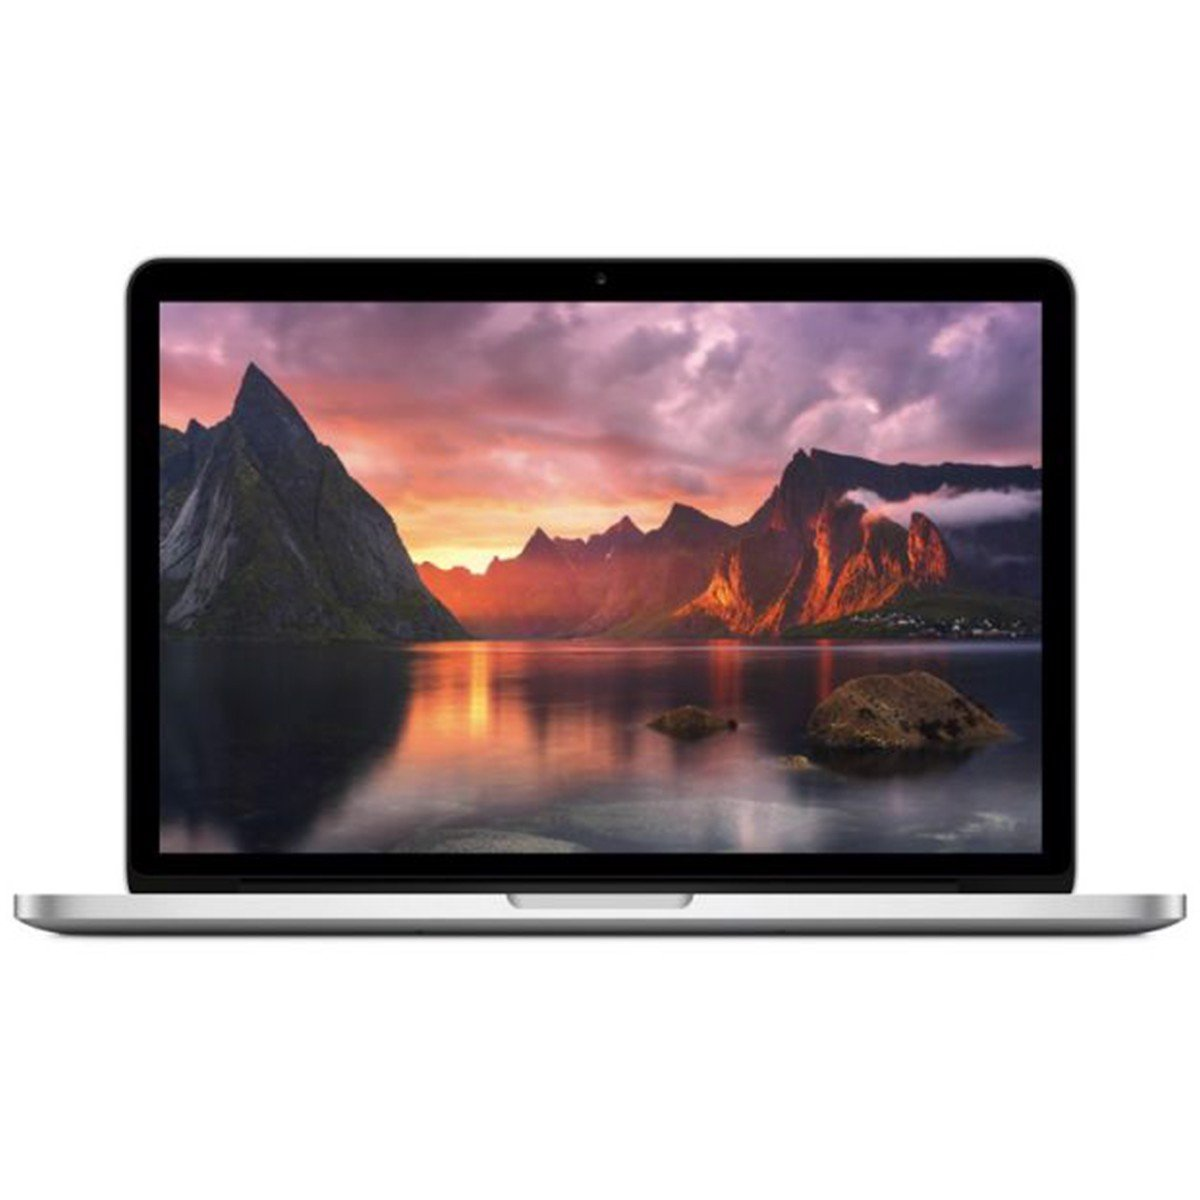 Macbook Pro (15.4 Inch, 2015) MJLQ2 - Quad Core i7 2.8 Ghz / RAM 16GB / SSD 512GB (Likenew 99%)